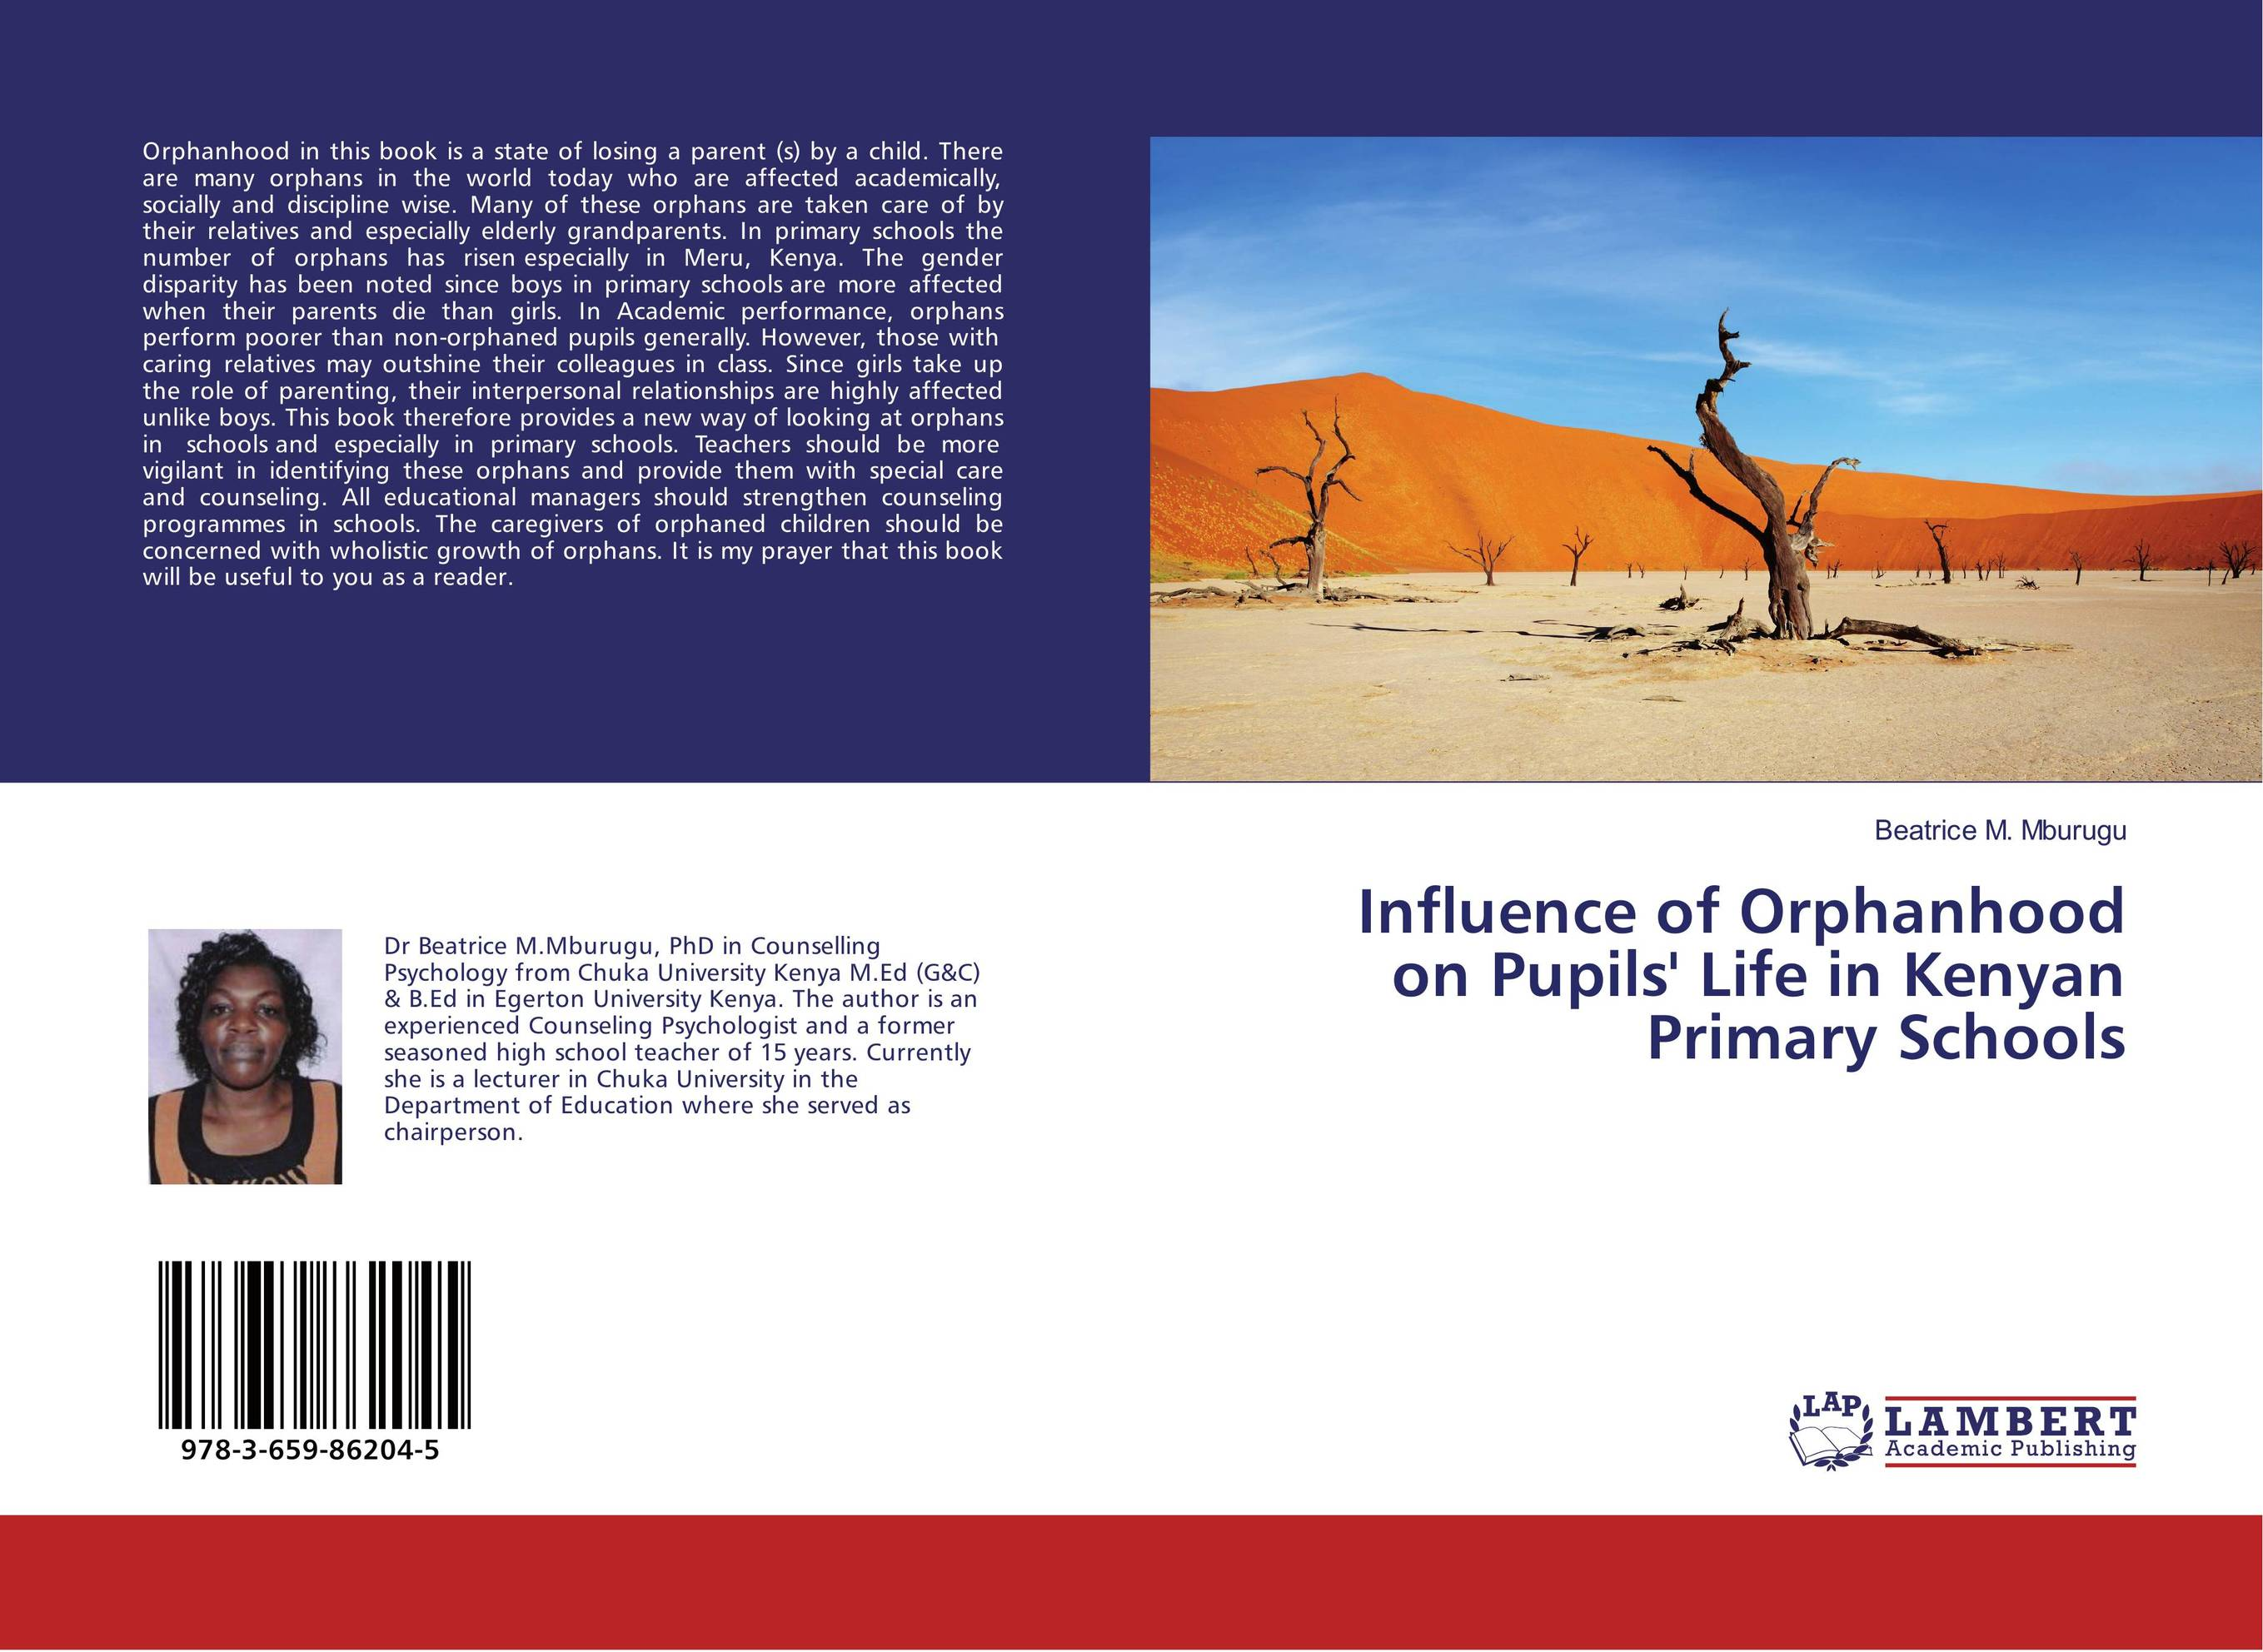 Influence of Orphanhood on Pupils' Life in Kenyan Primary Schools use of role plays in teaching english in primary schools